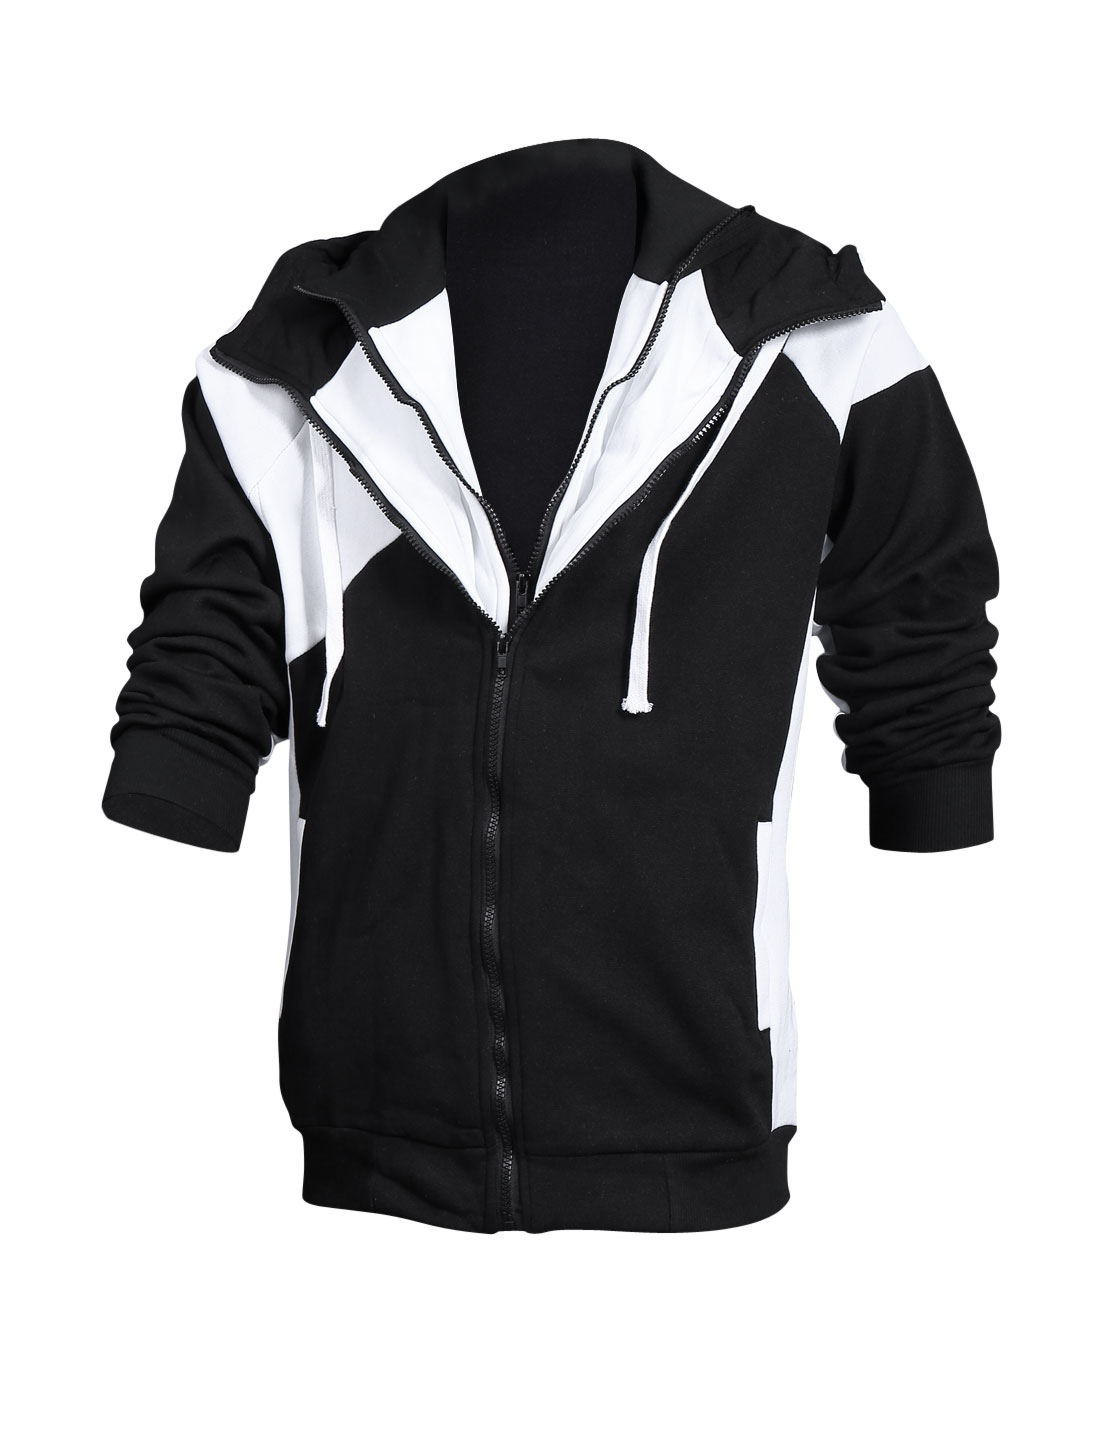 Man Black Double Zip Up Contrast Color Drawstring Detail Hoodie Jacket M